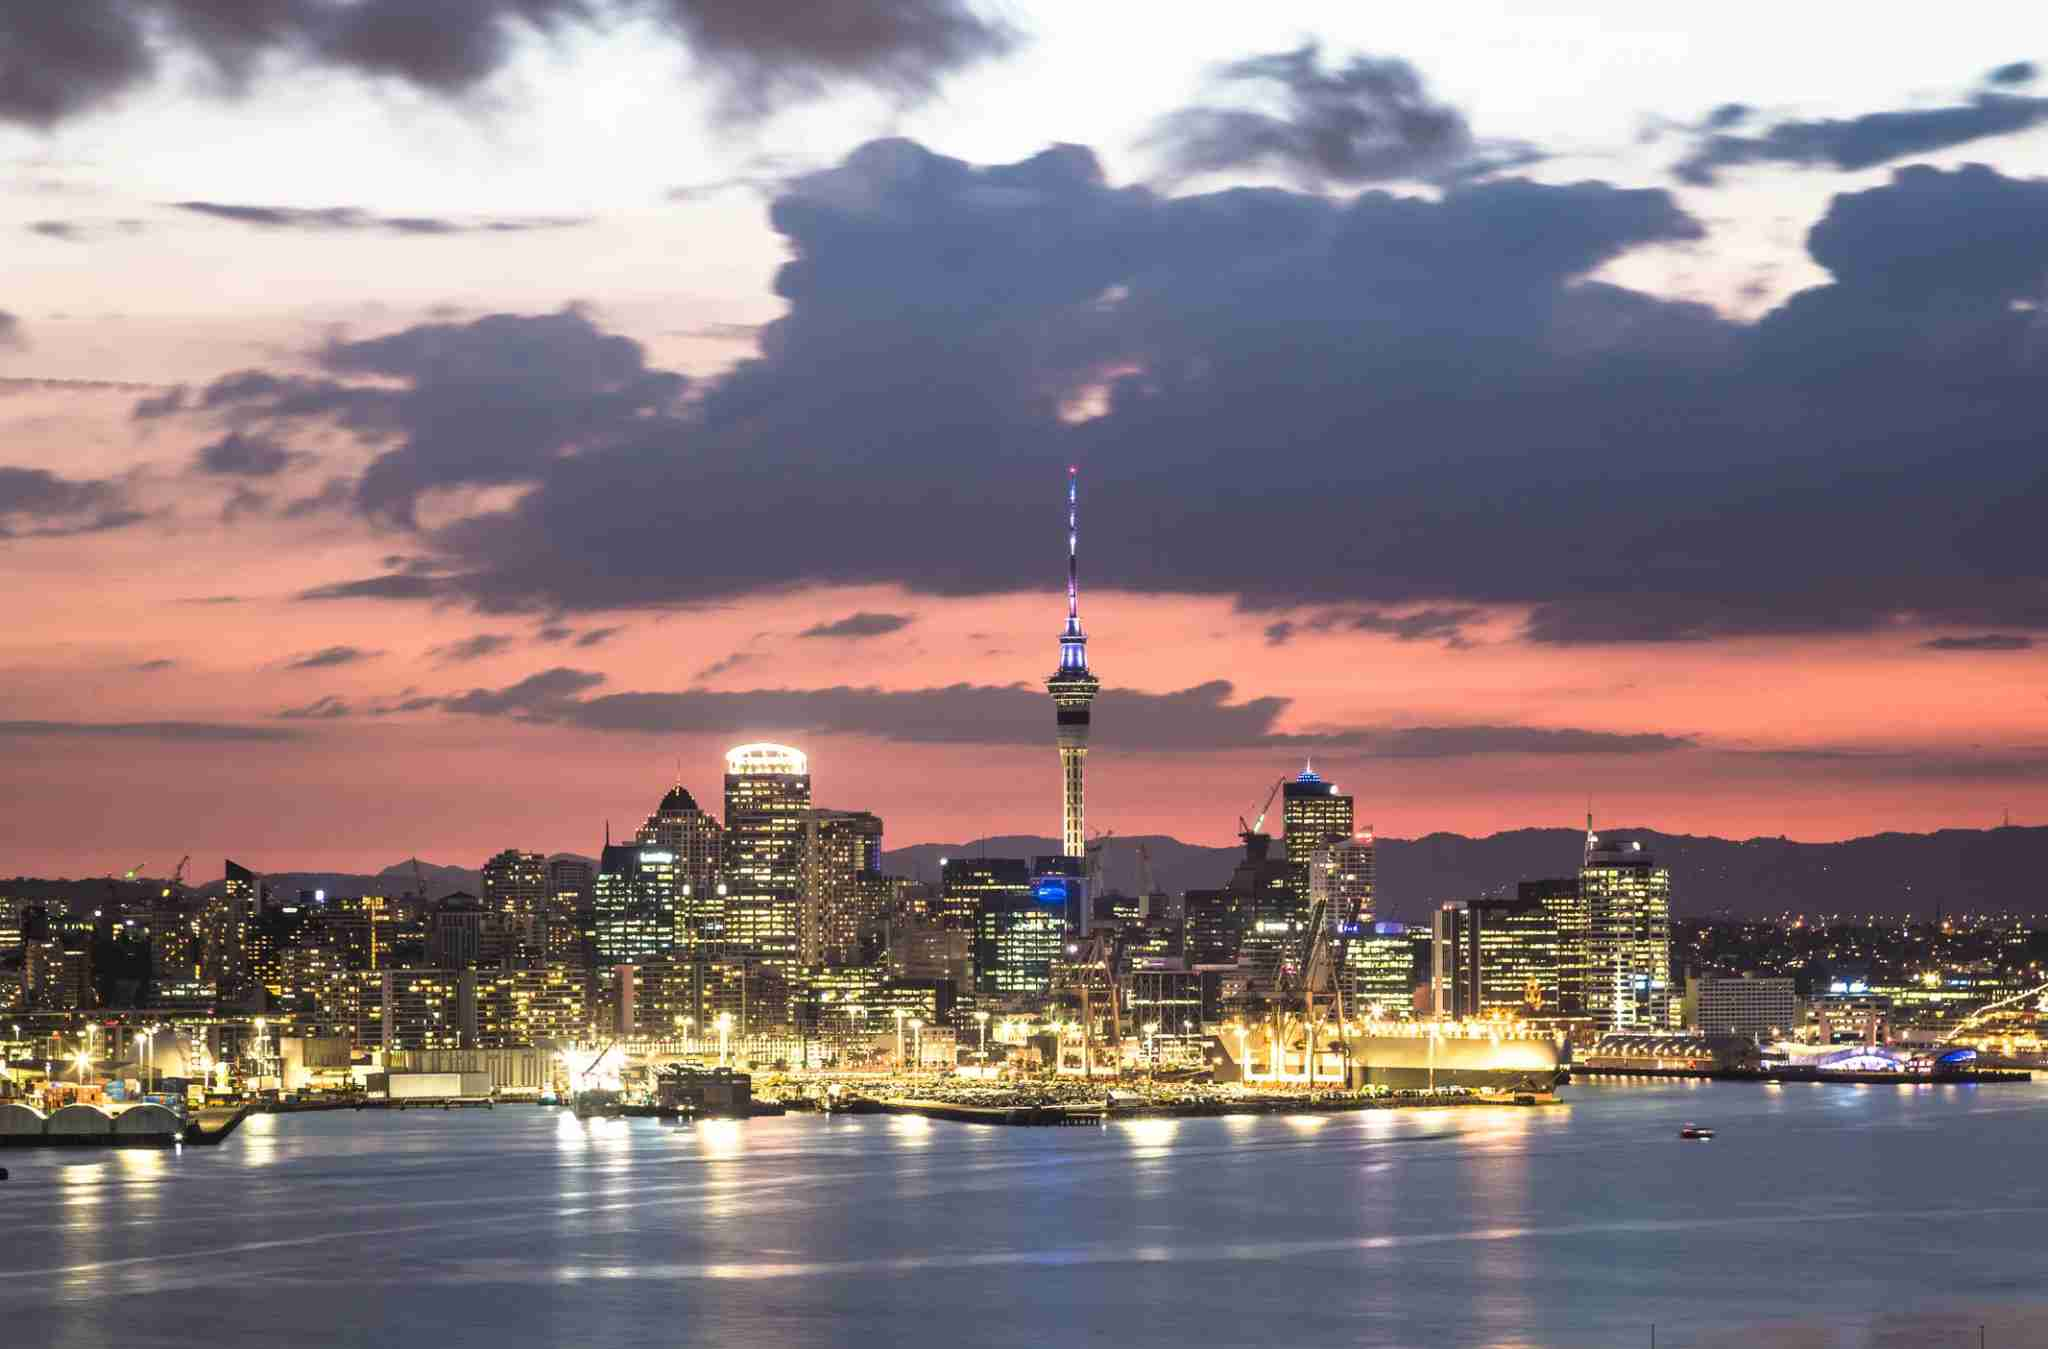 Stunning sunset over the Auckland financial district famous skyline from the viewpoint in Davenport in New Zealand